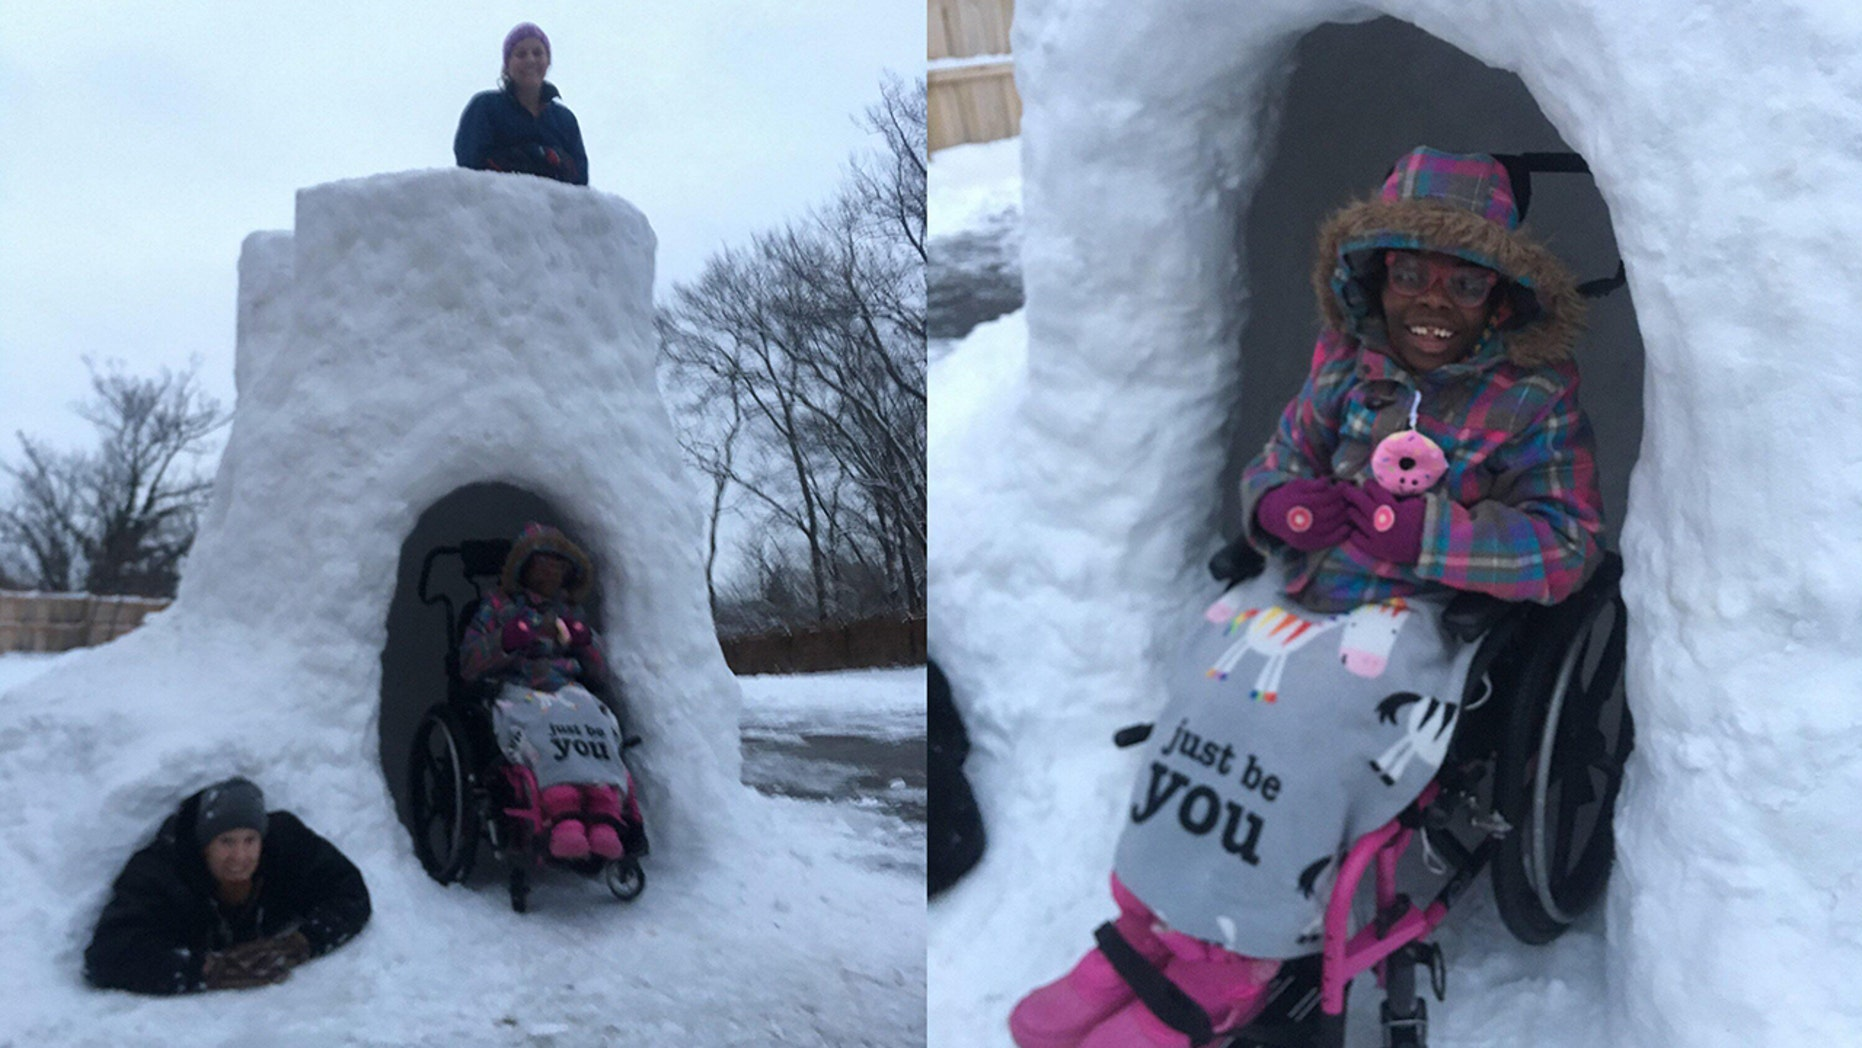 An Ohio dad is going viral for building a giant handicap-accessible snow fort for his kids.